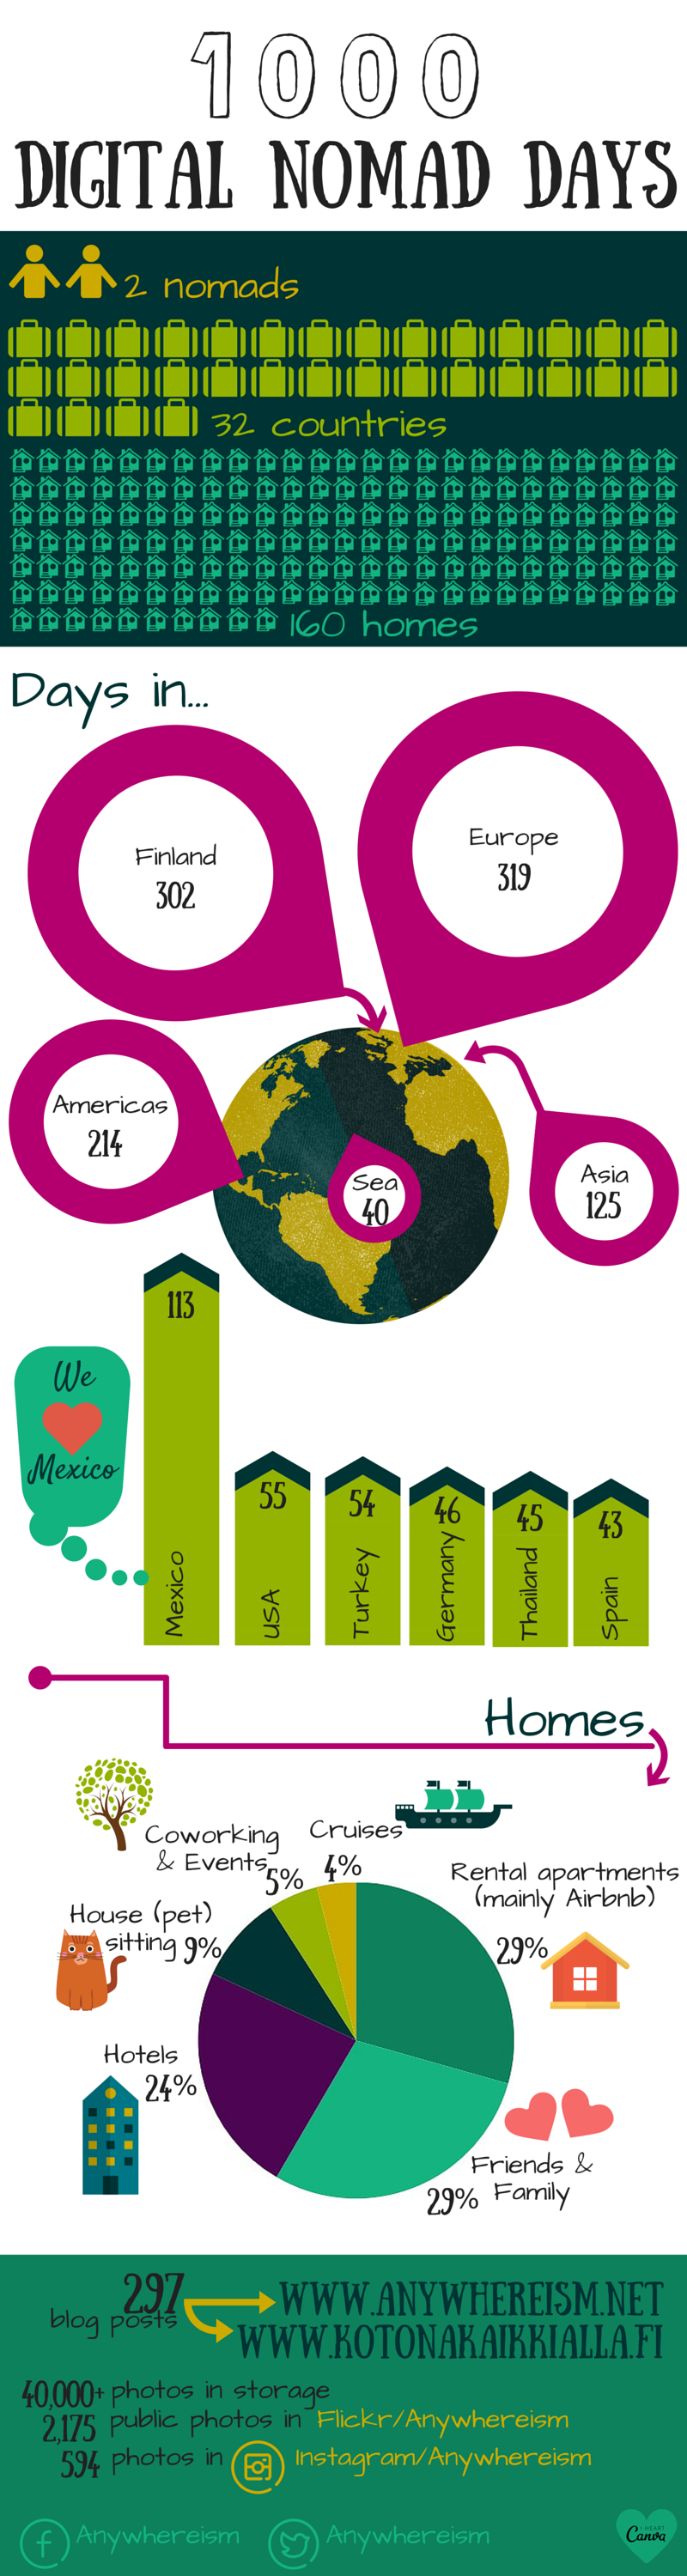 Anywhereism 1000 digital nomad days Infograph